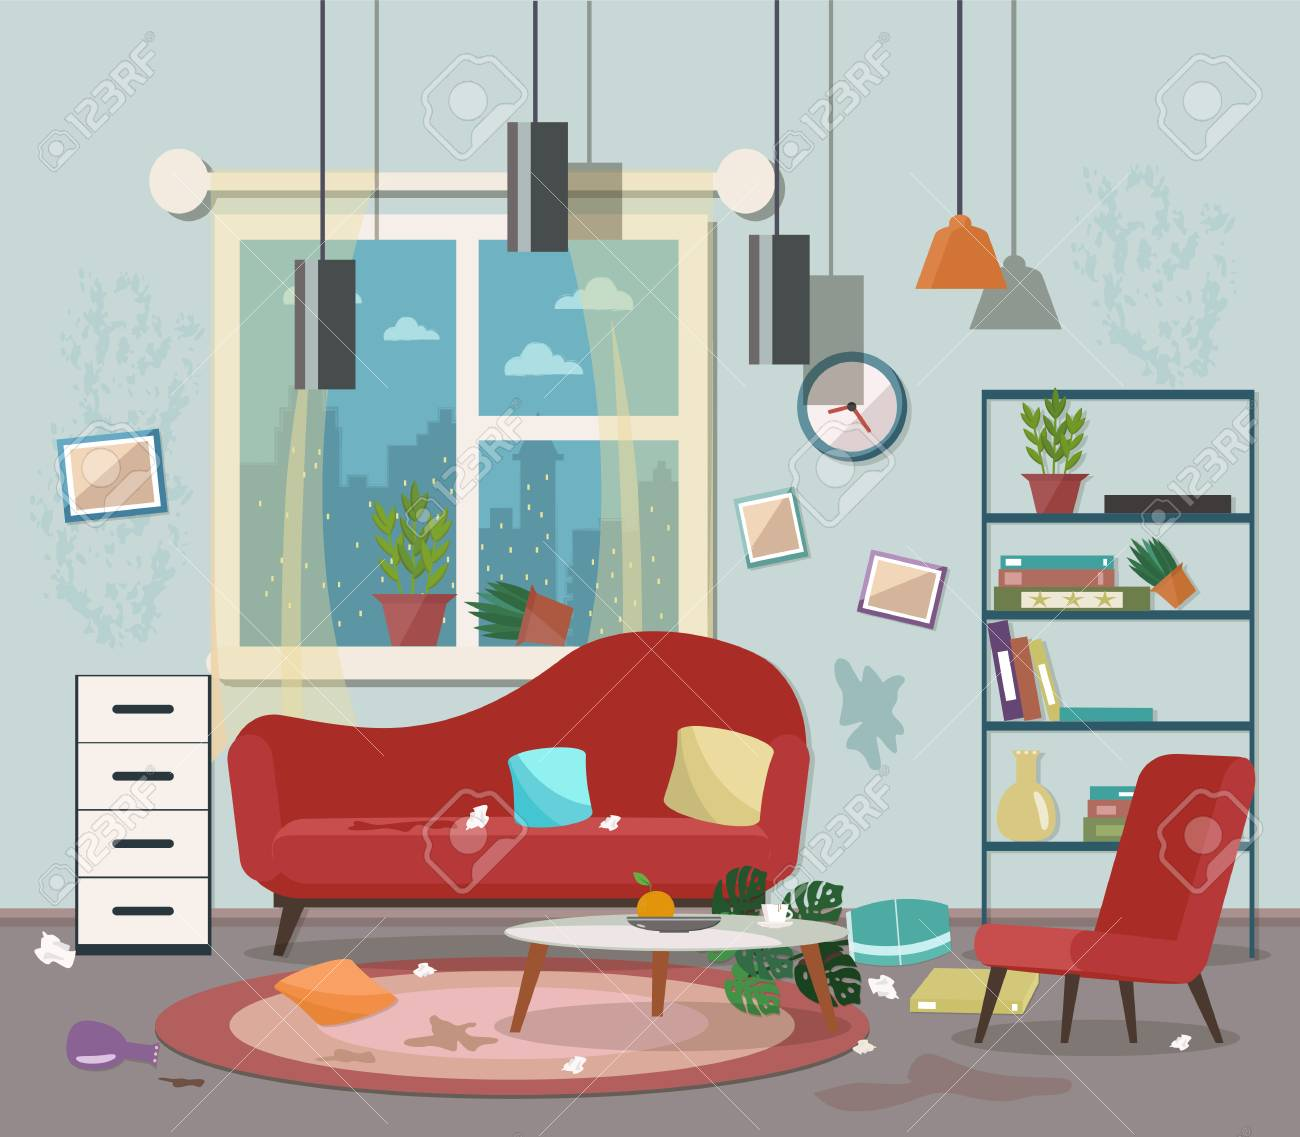 Dirty Cluttered Messy Living Room Vector Flat Illustration